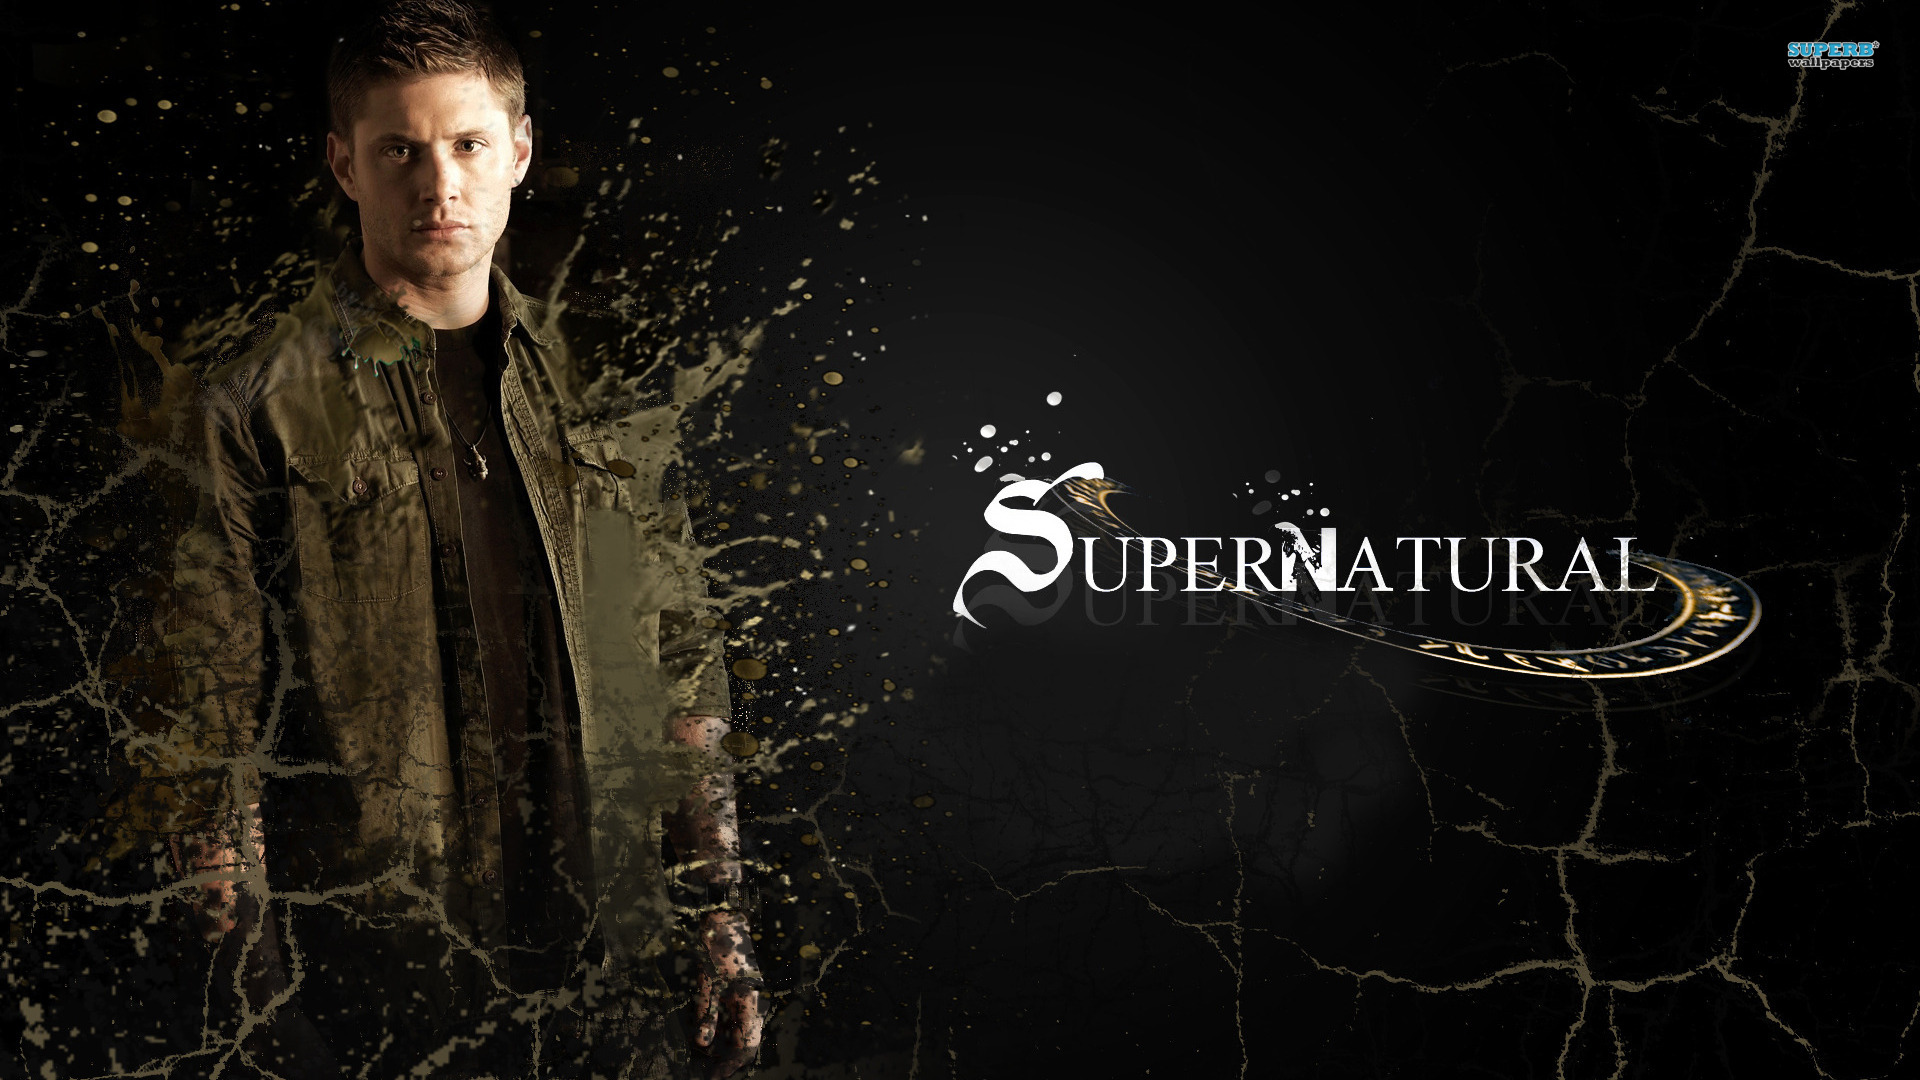 Supernatural Logo Desktop 1920x1080